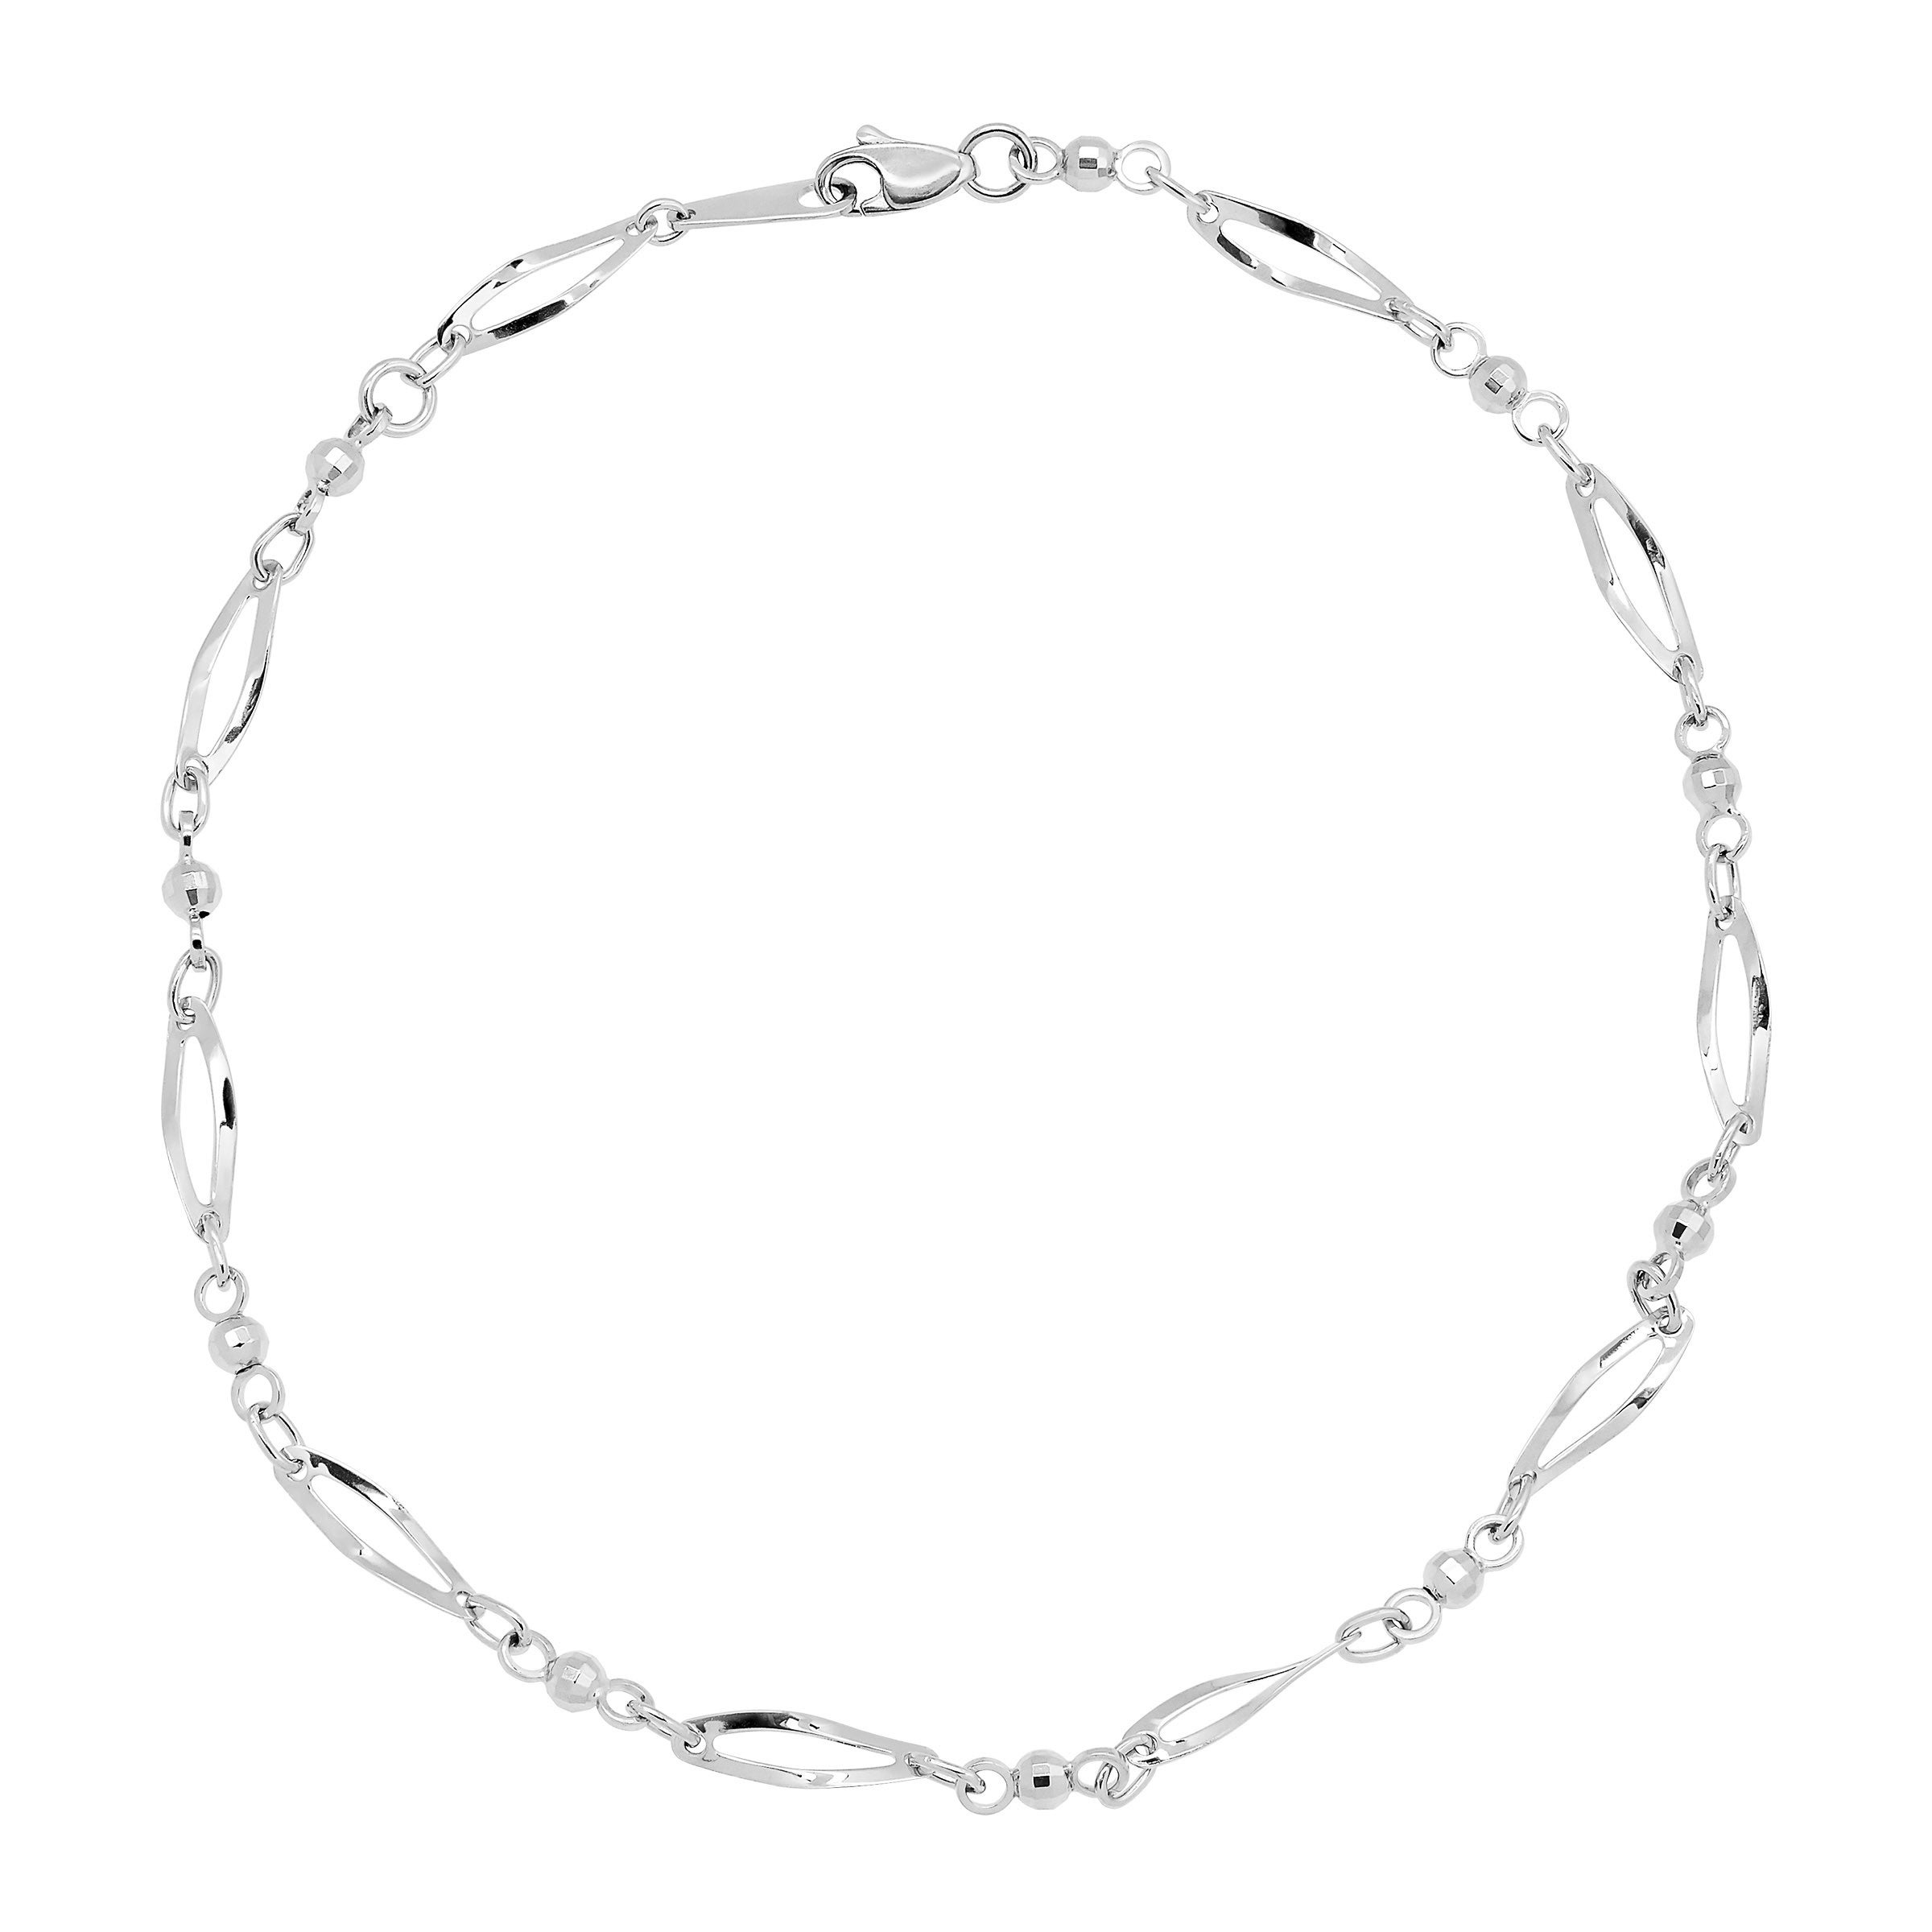 2019 New Style 14k Two Gold Abstract Fancy Link Design Ankle Bracelet 2.8 Grams Anklet Clearance Price Jewelry & Watches Fine Jewelry